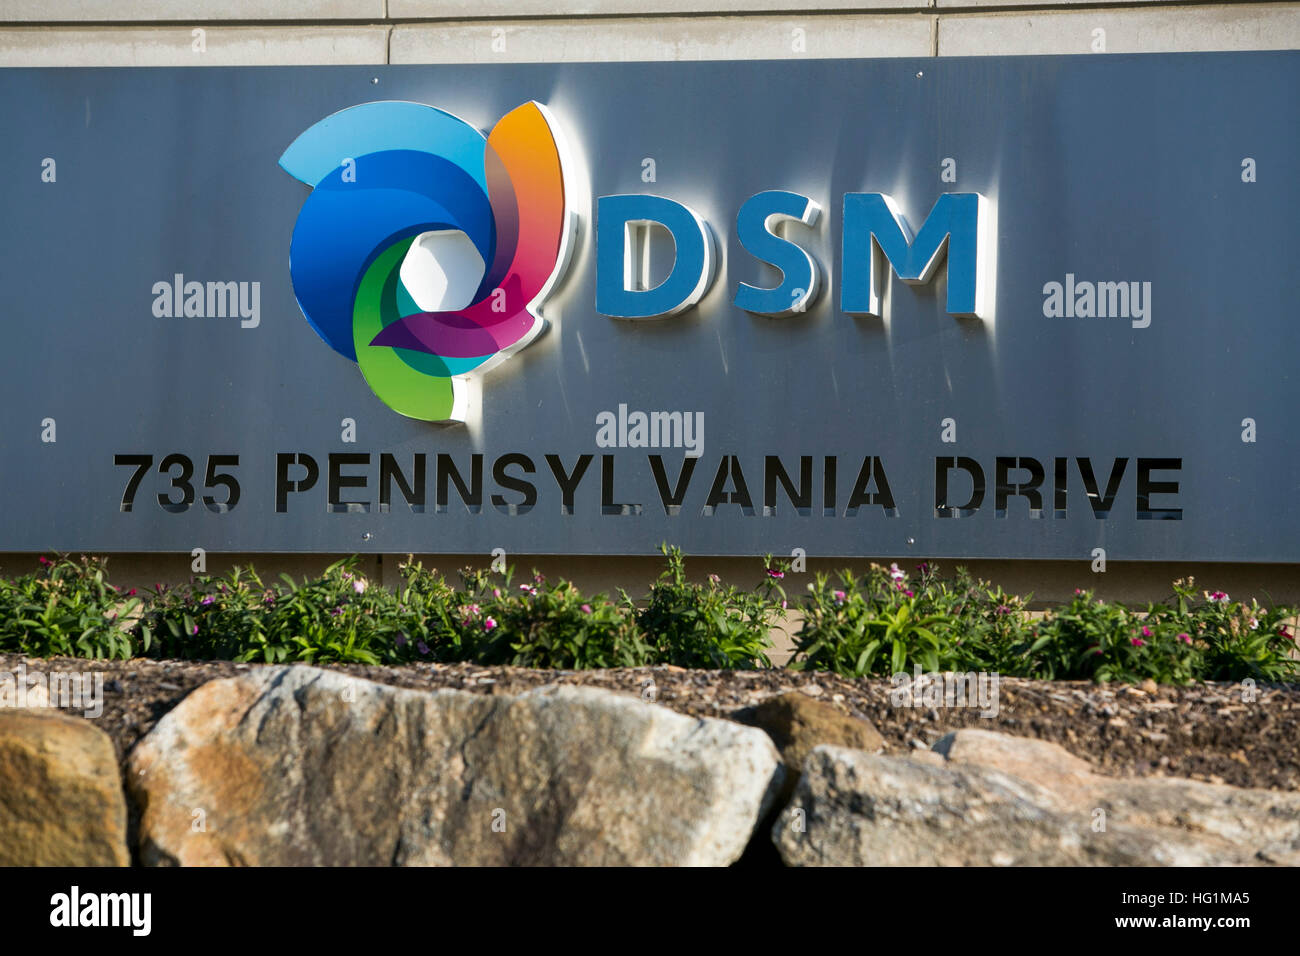 A logo sign outside of a facility occupied by DSM Biomedical in Exton, Pennsylvania on December 10, 2016. - Stock Image